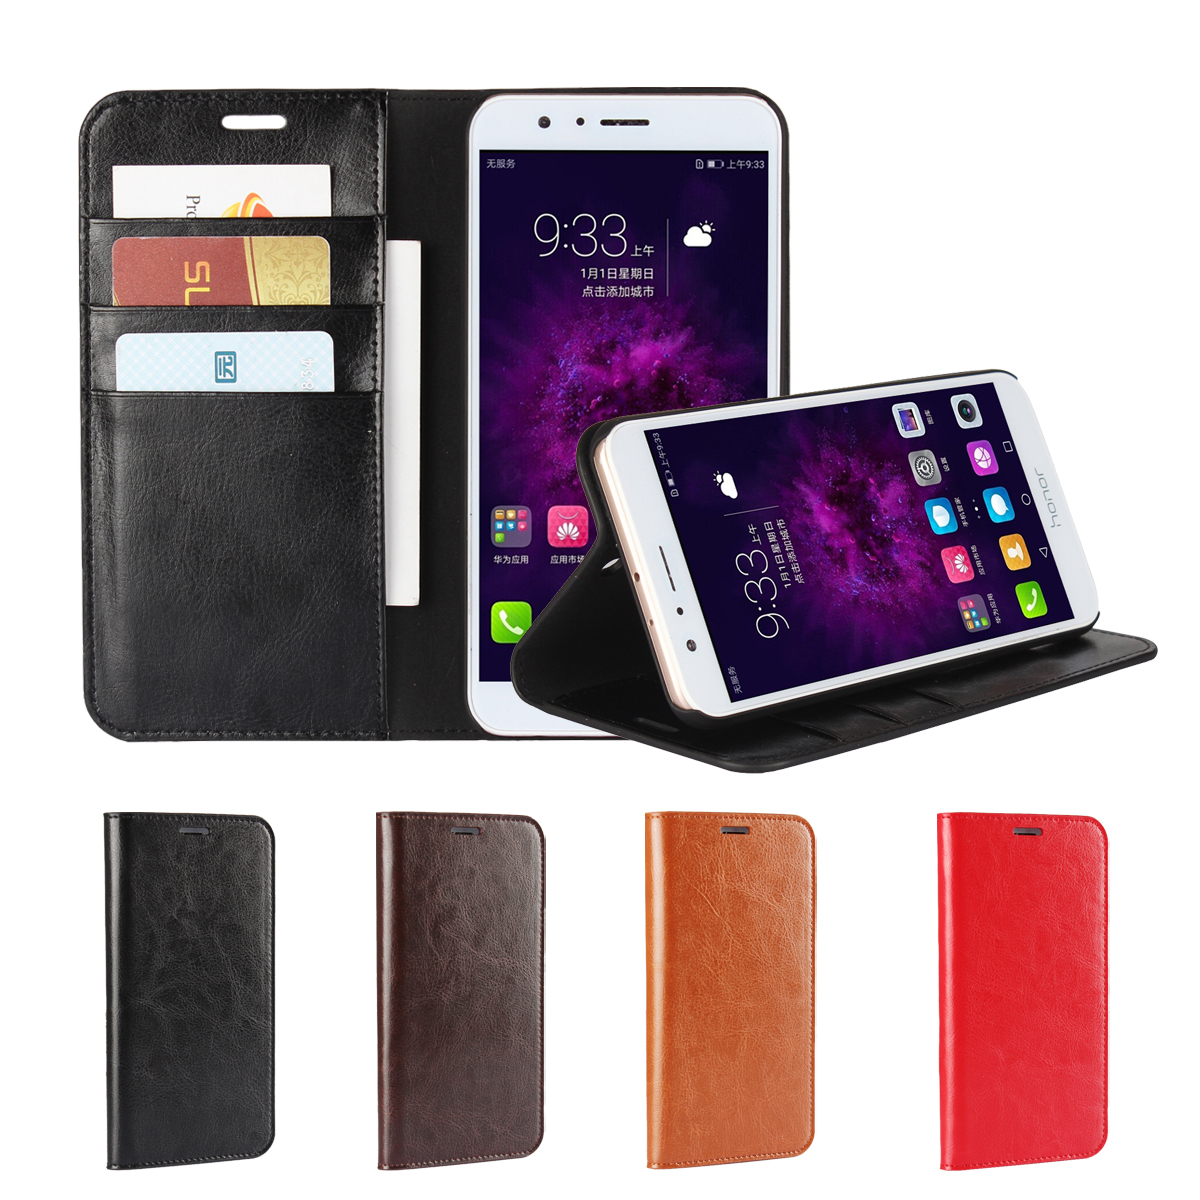 Deluxe Wallet Case For Huawei V9 for Huawei Honor 8 Pro 5 7 premium leather Case